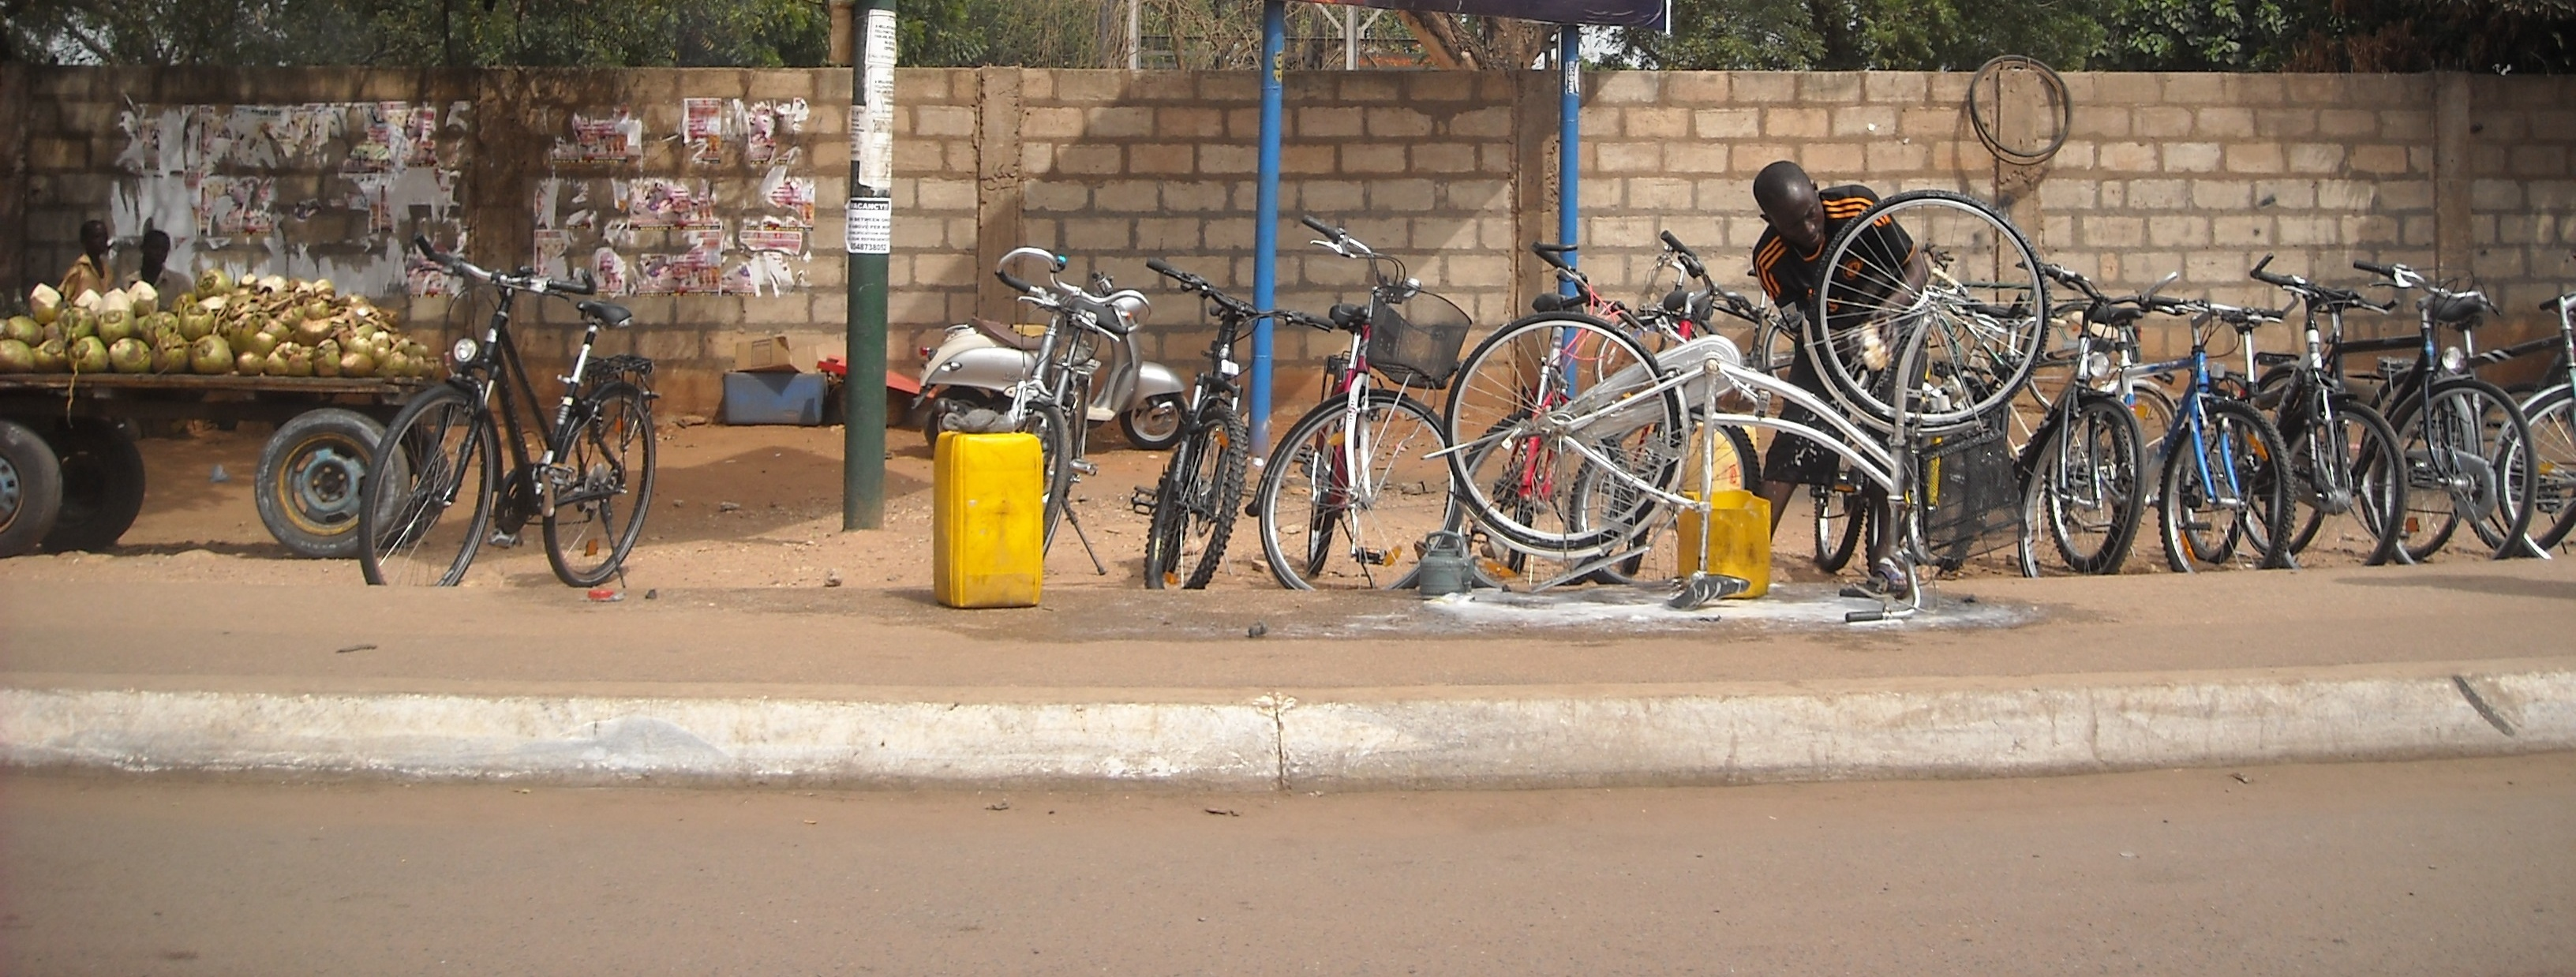 On its path to liveability, Accra explores new transport options